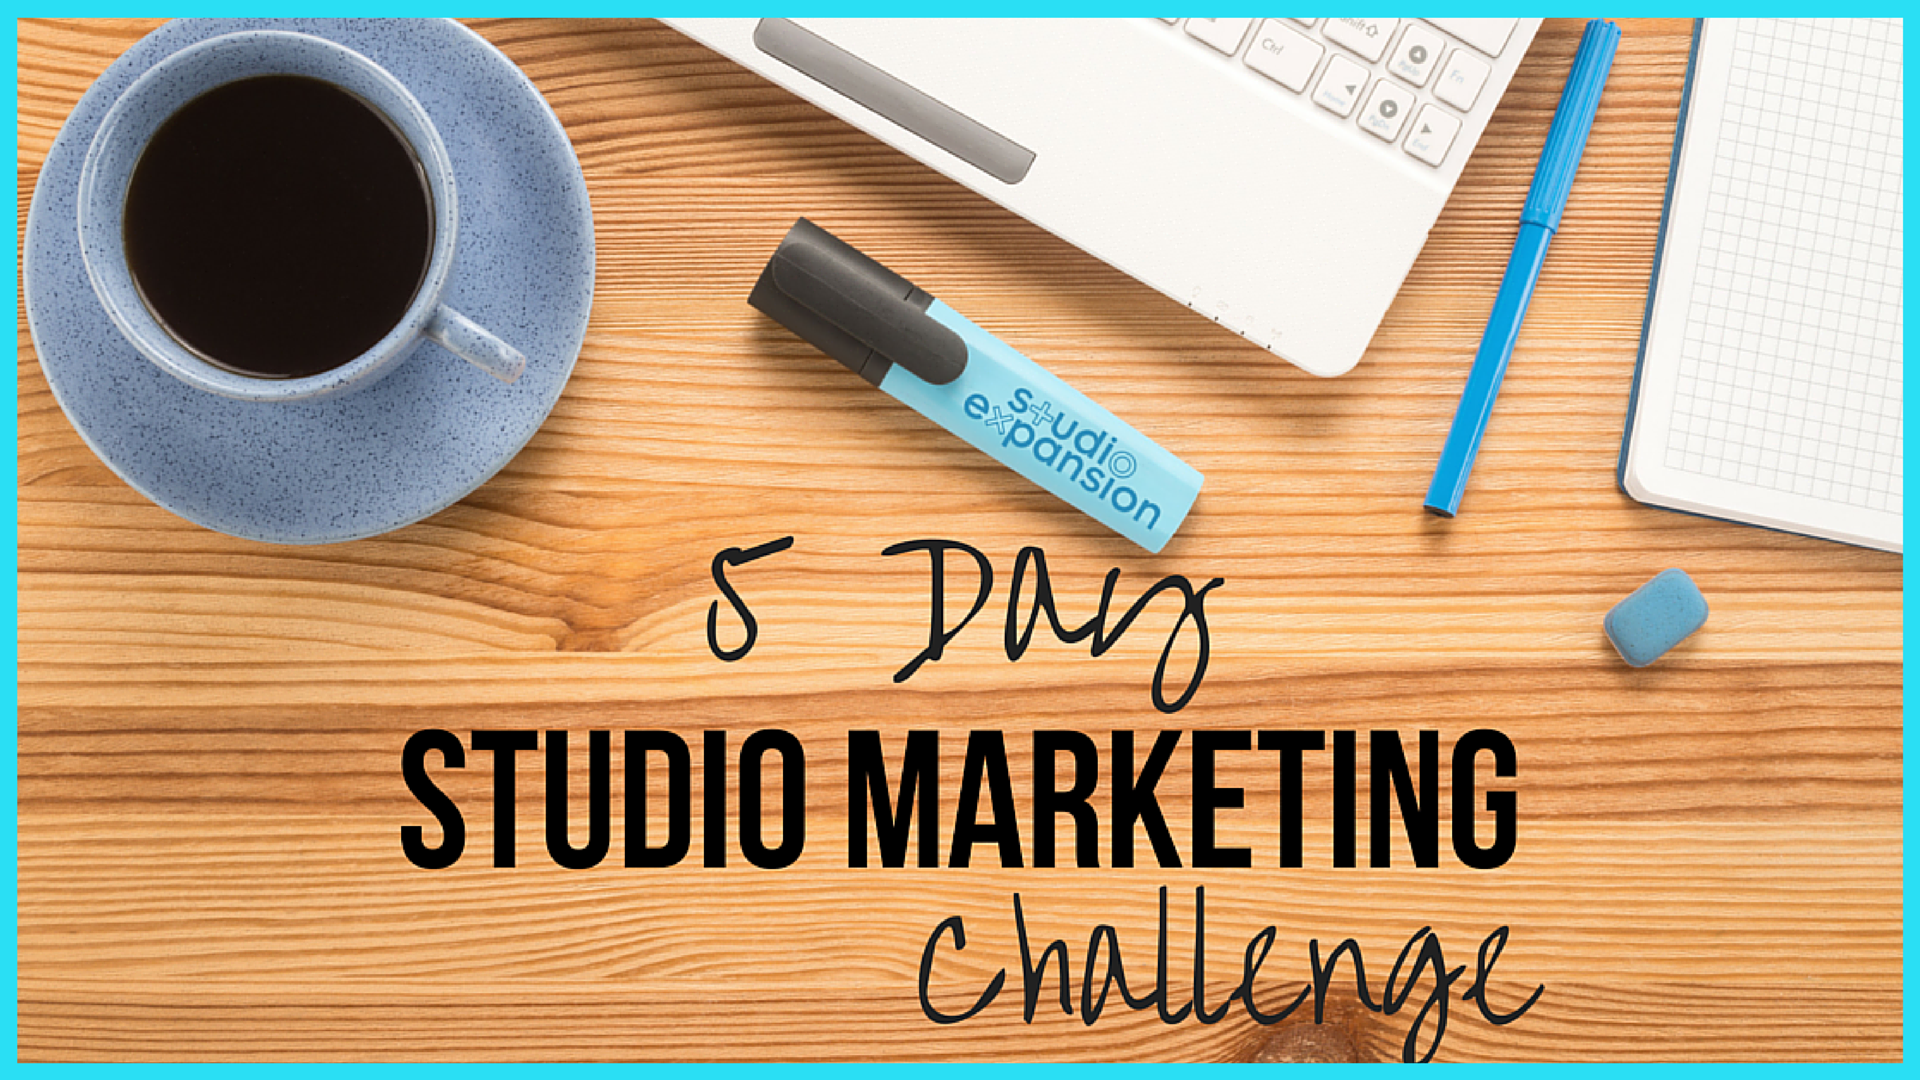 5 Day Studio Marketing Challenge